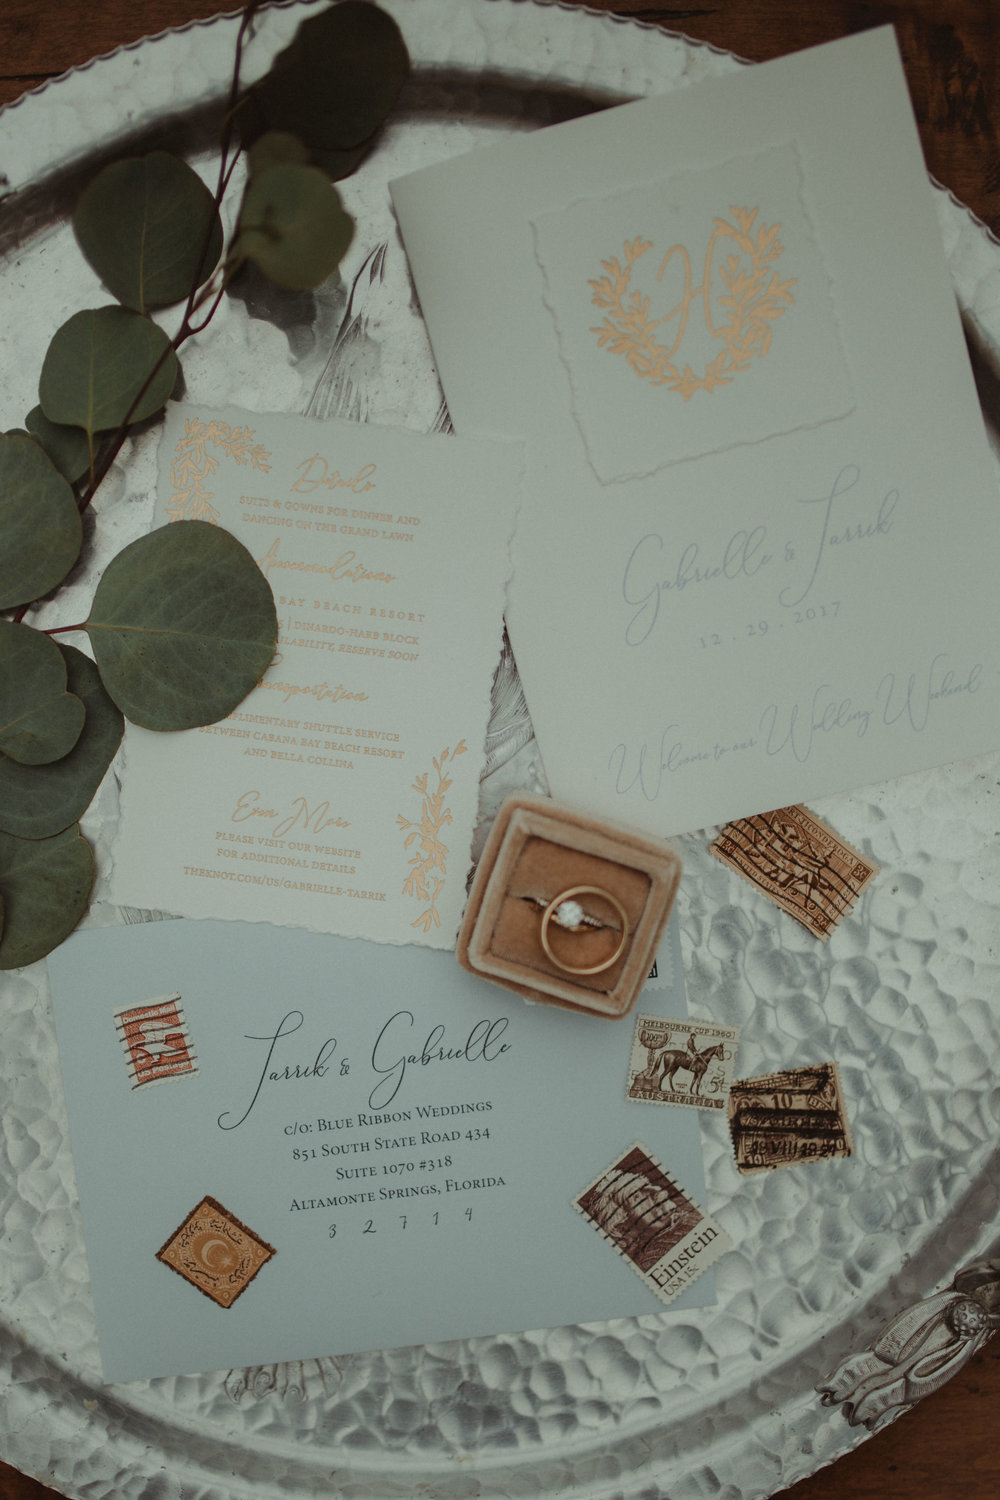 Wedding details including invitation and wedding rings